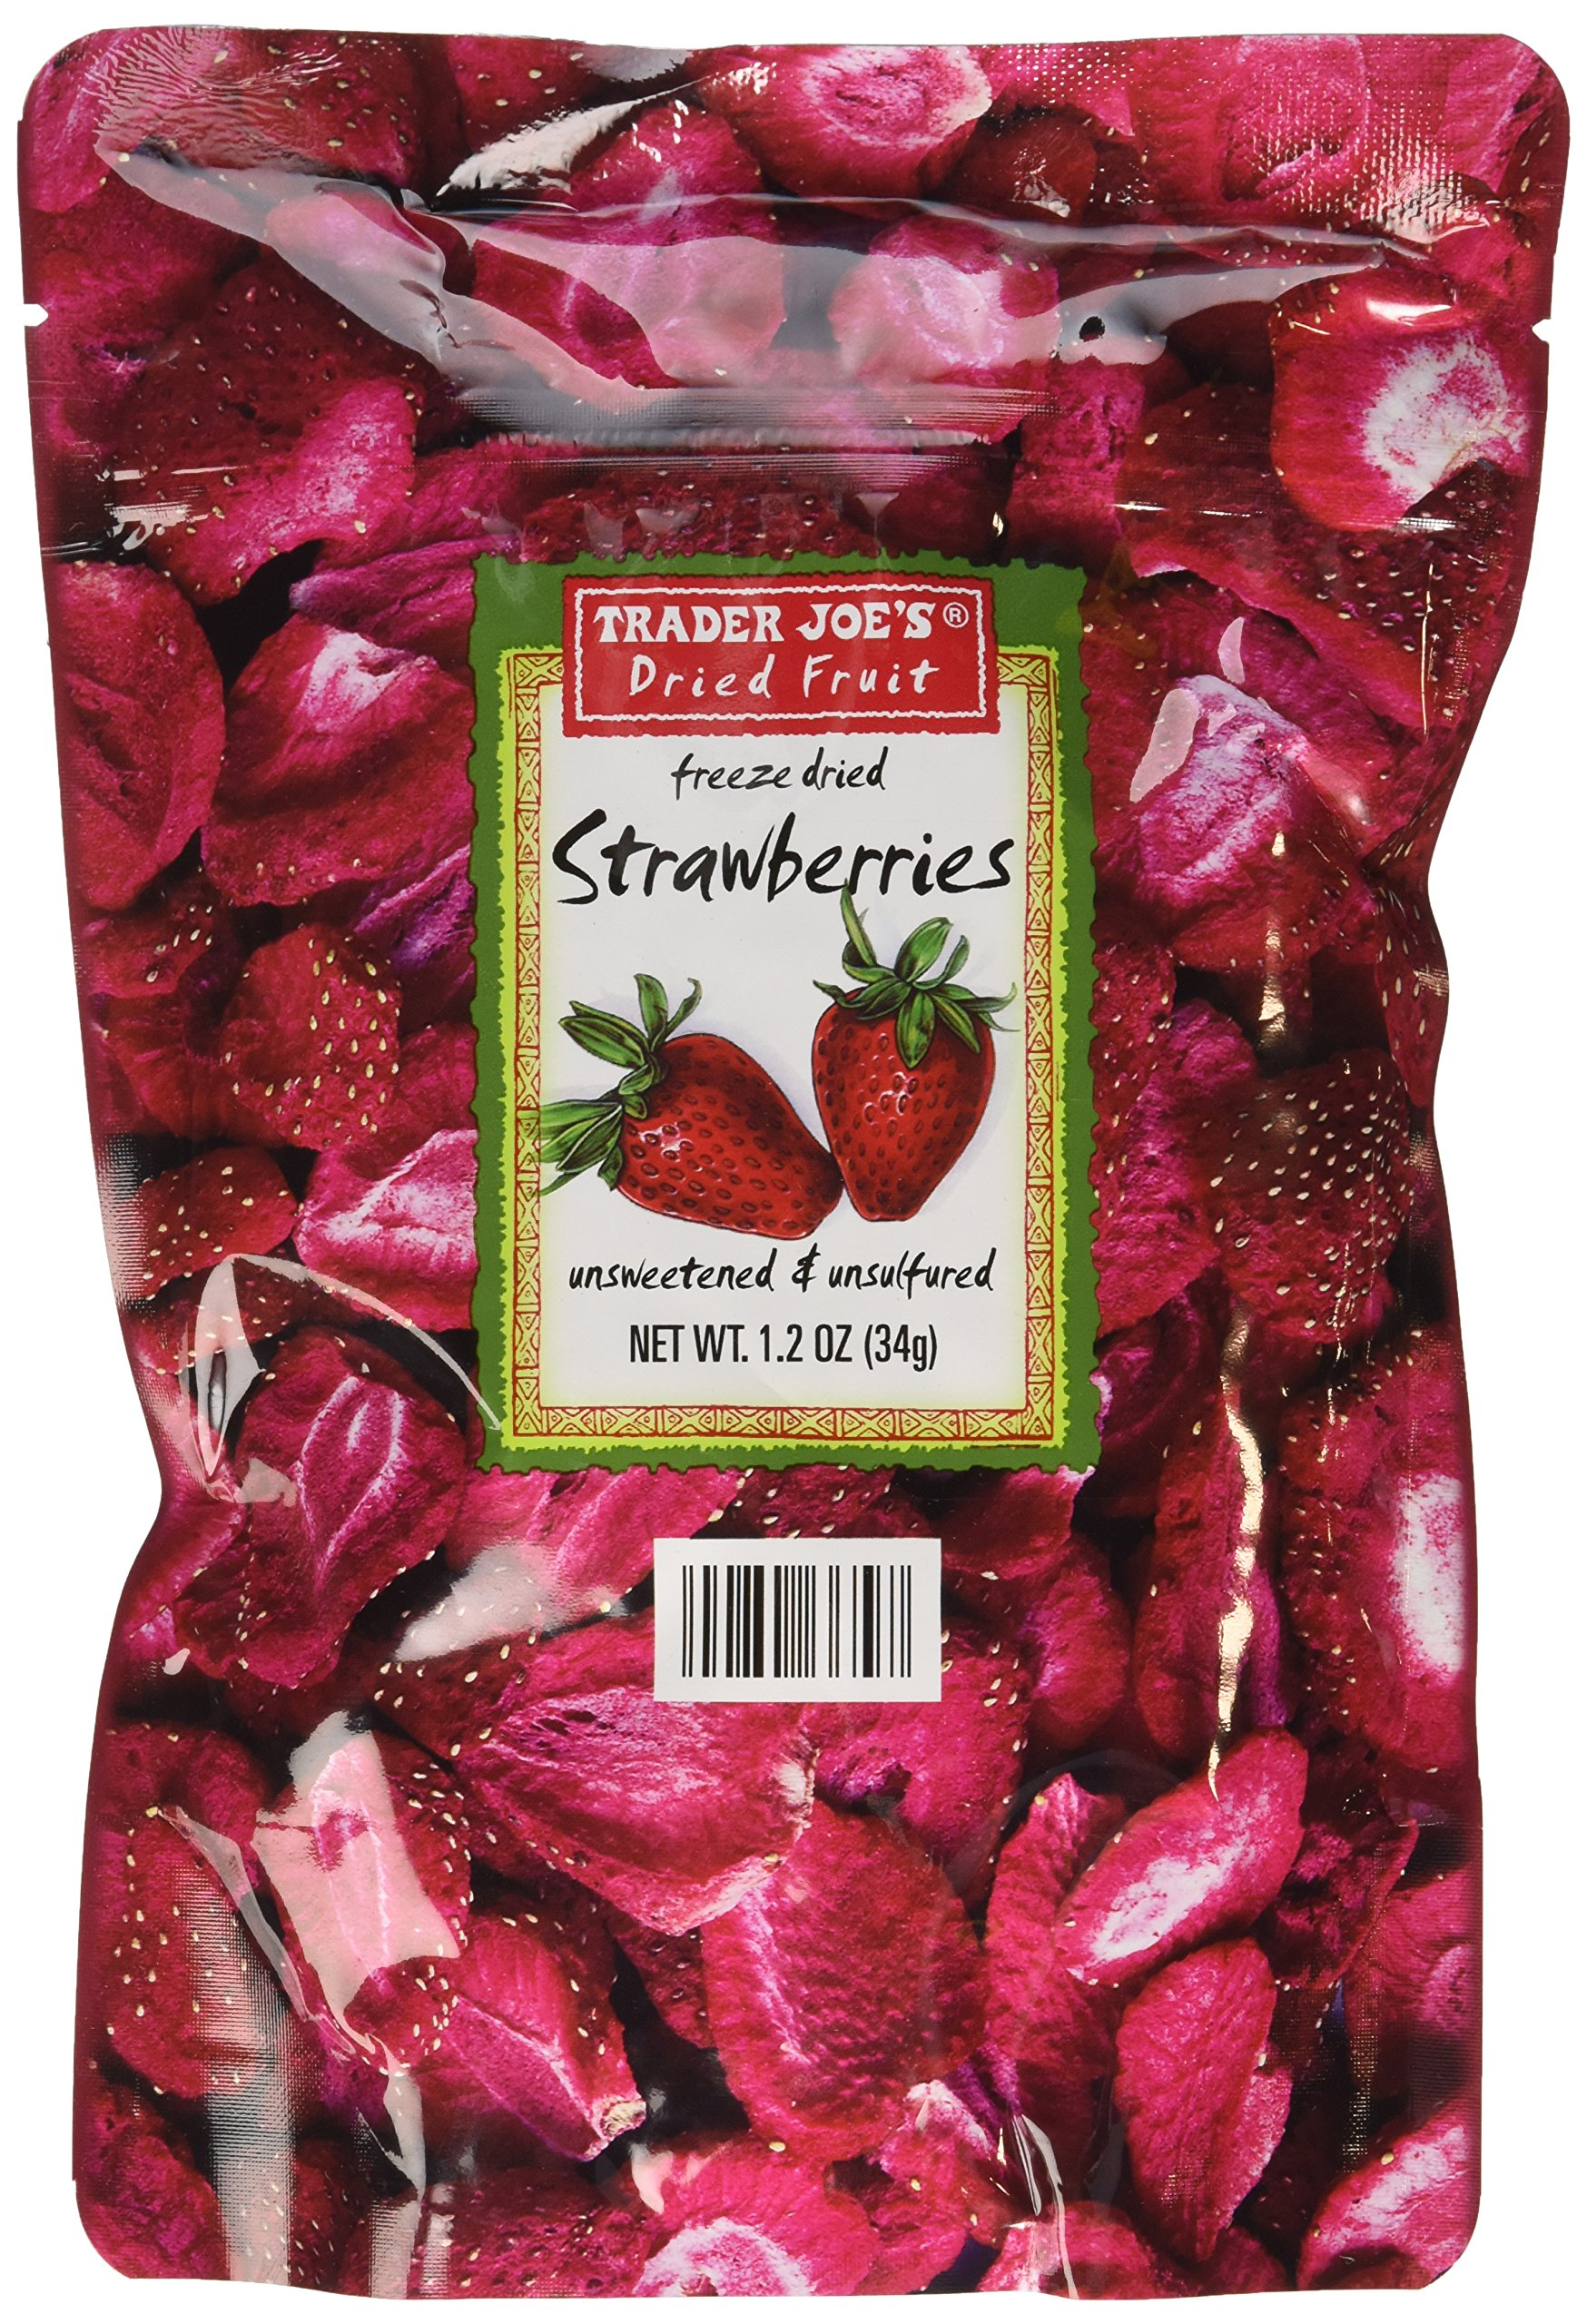 3 Pack Trader Joe's Dried Fruit Freeze Dried Strawberries Unsweetened and Unsulfured by Trader Joe's